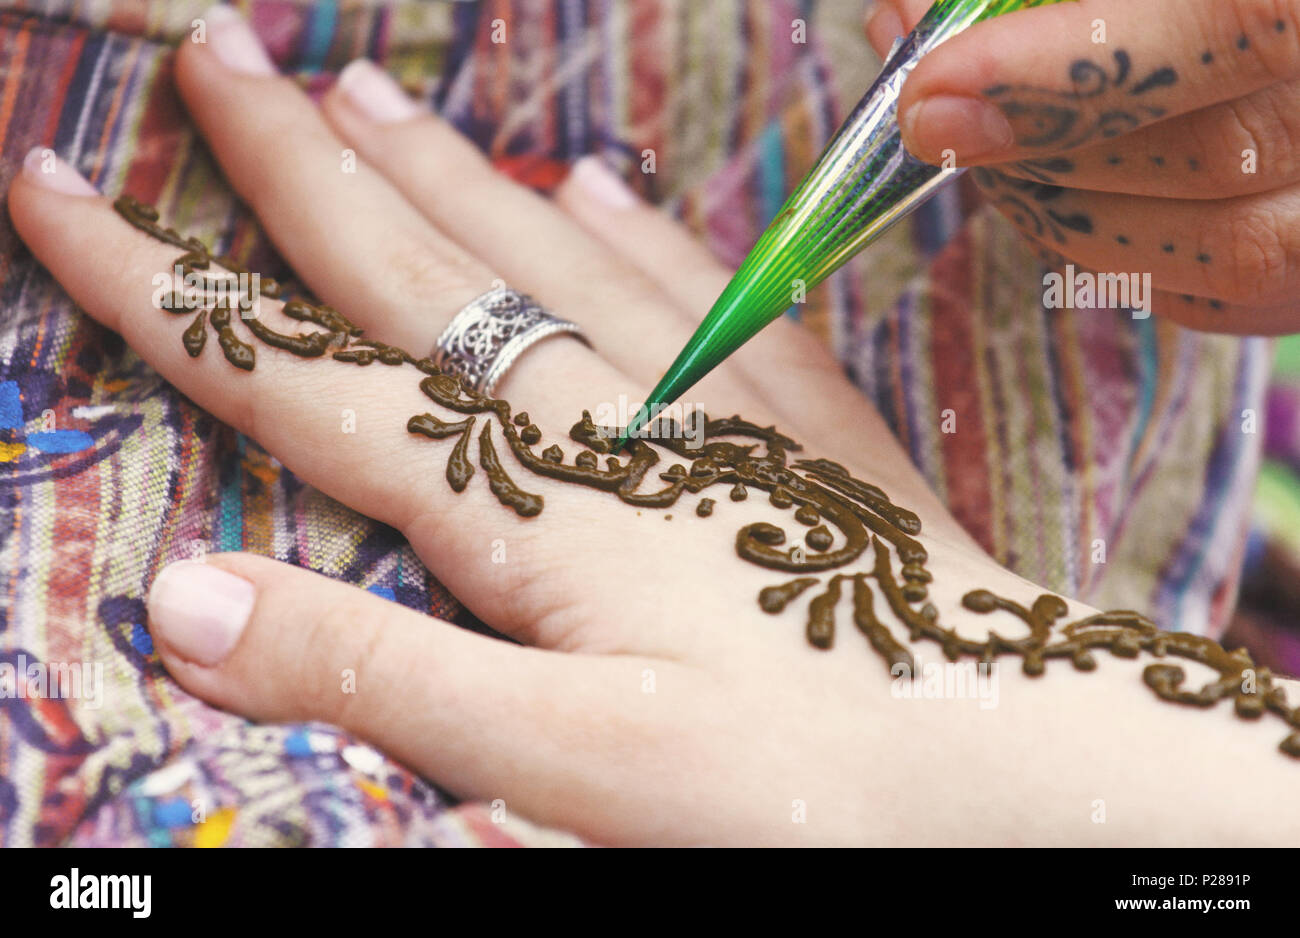 ed29d79e0 Artist painting traditional indian henna tattoo on woman hand, closeup  picture, focus on mehndi artwork